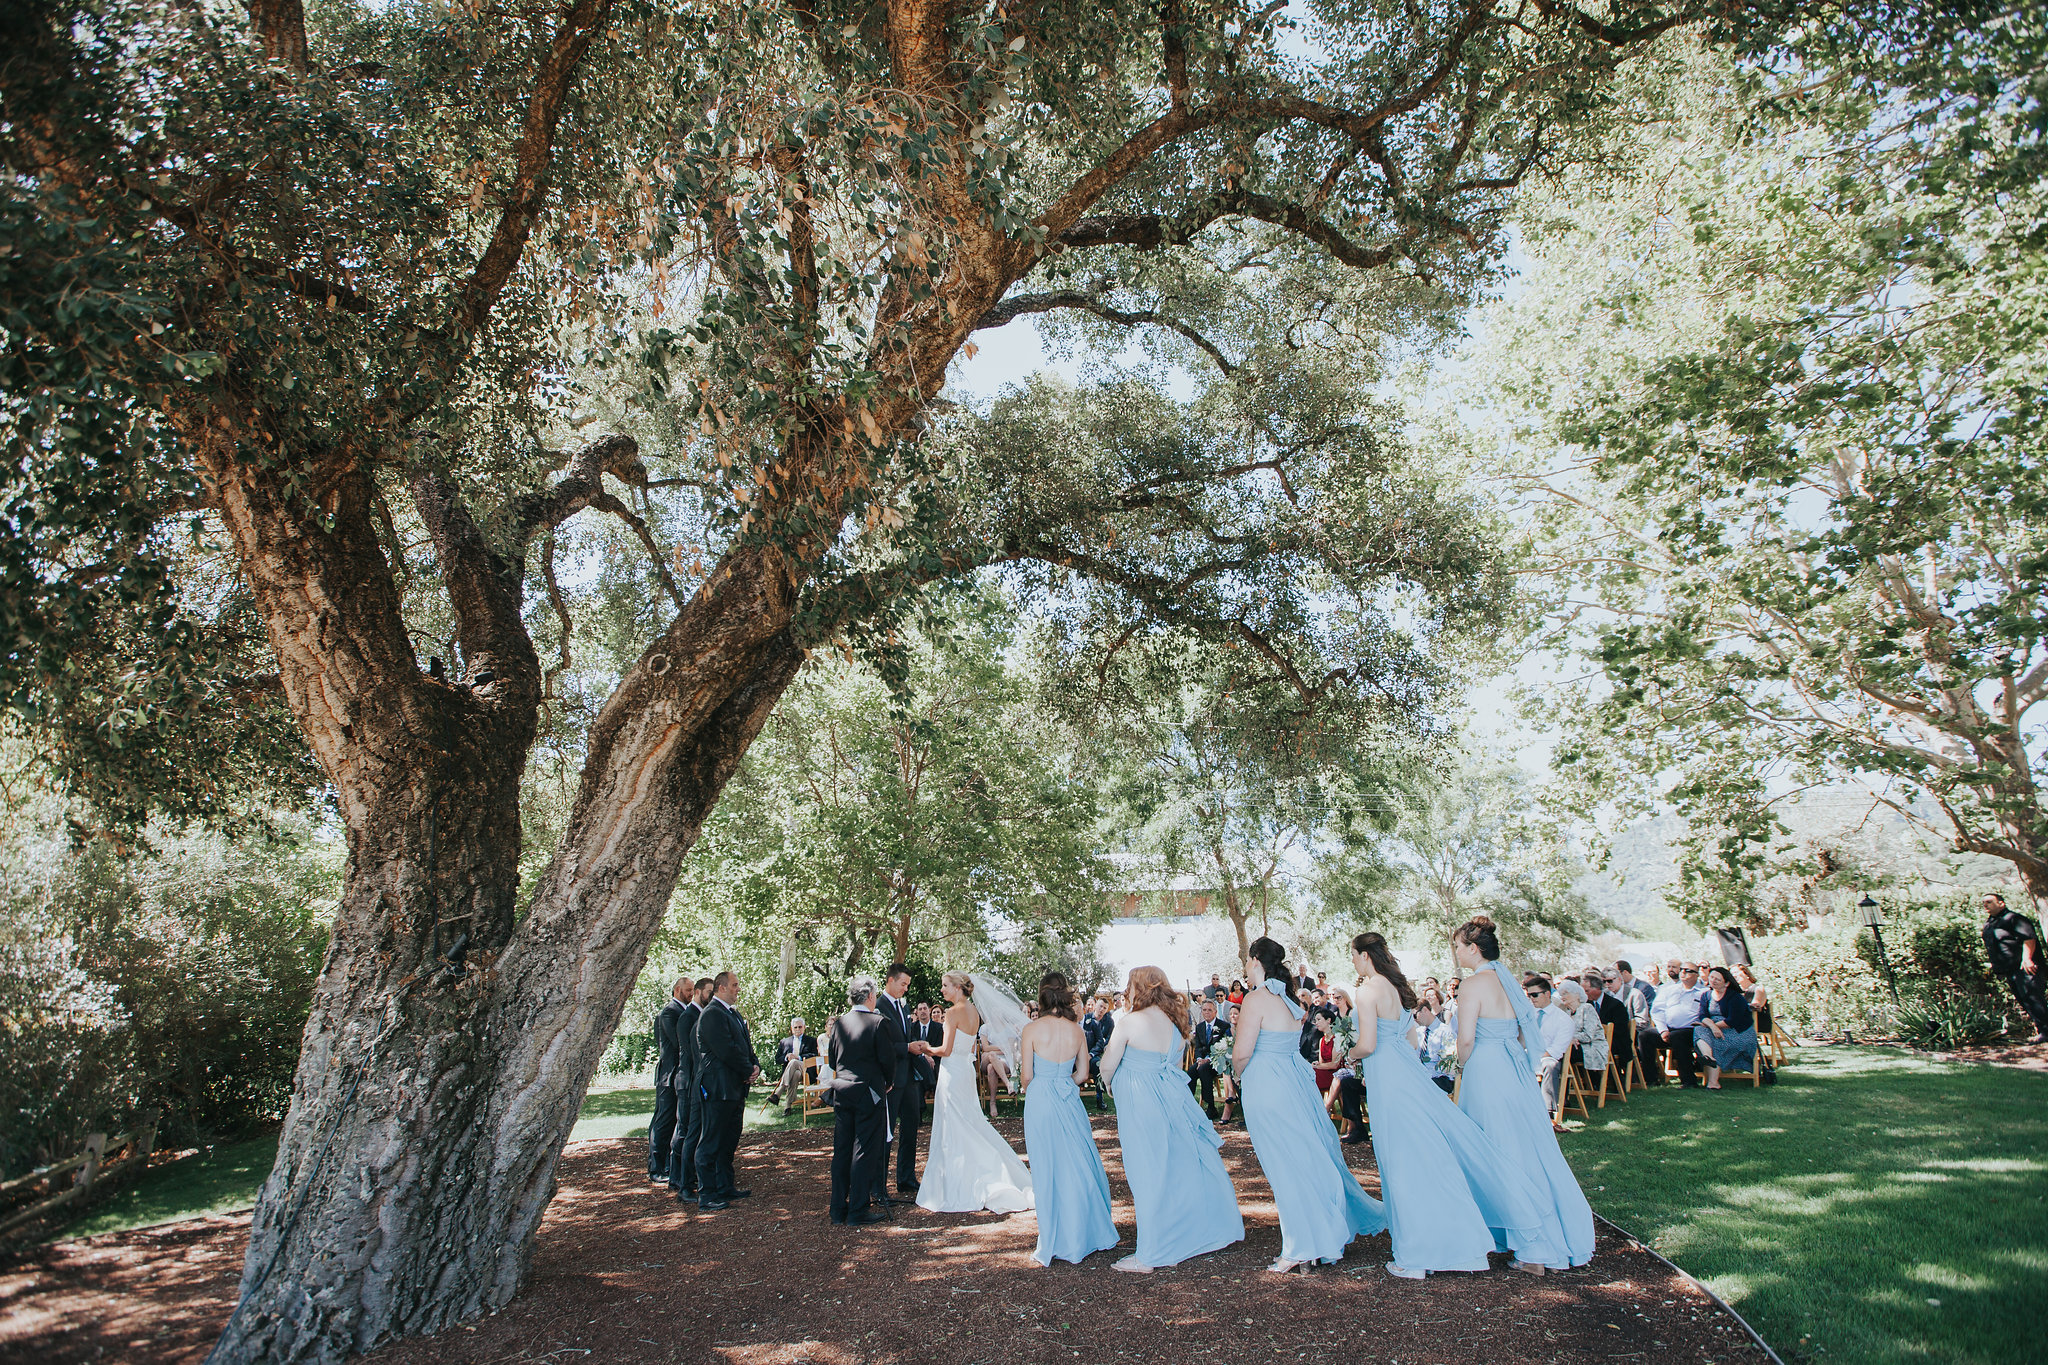 rus-farm-wedding-healdsburg-ceremony-oak-tree-heald-wedding-consulting-hwc.jpg